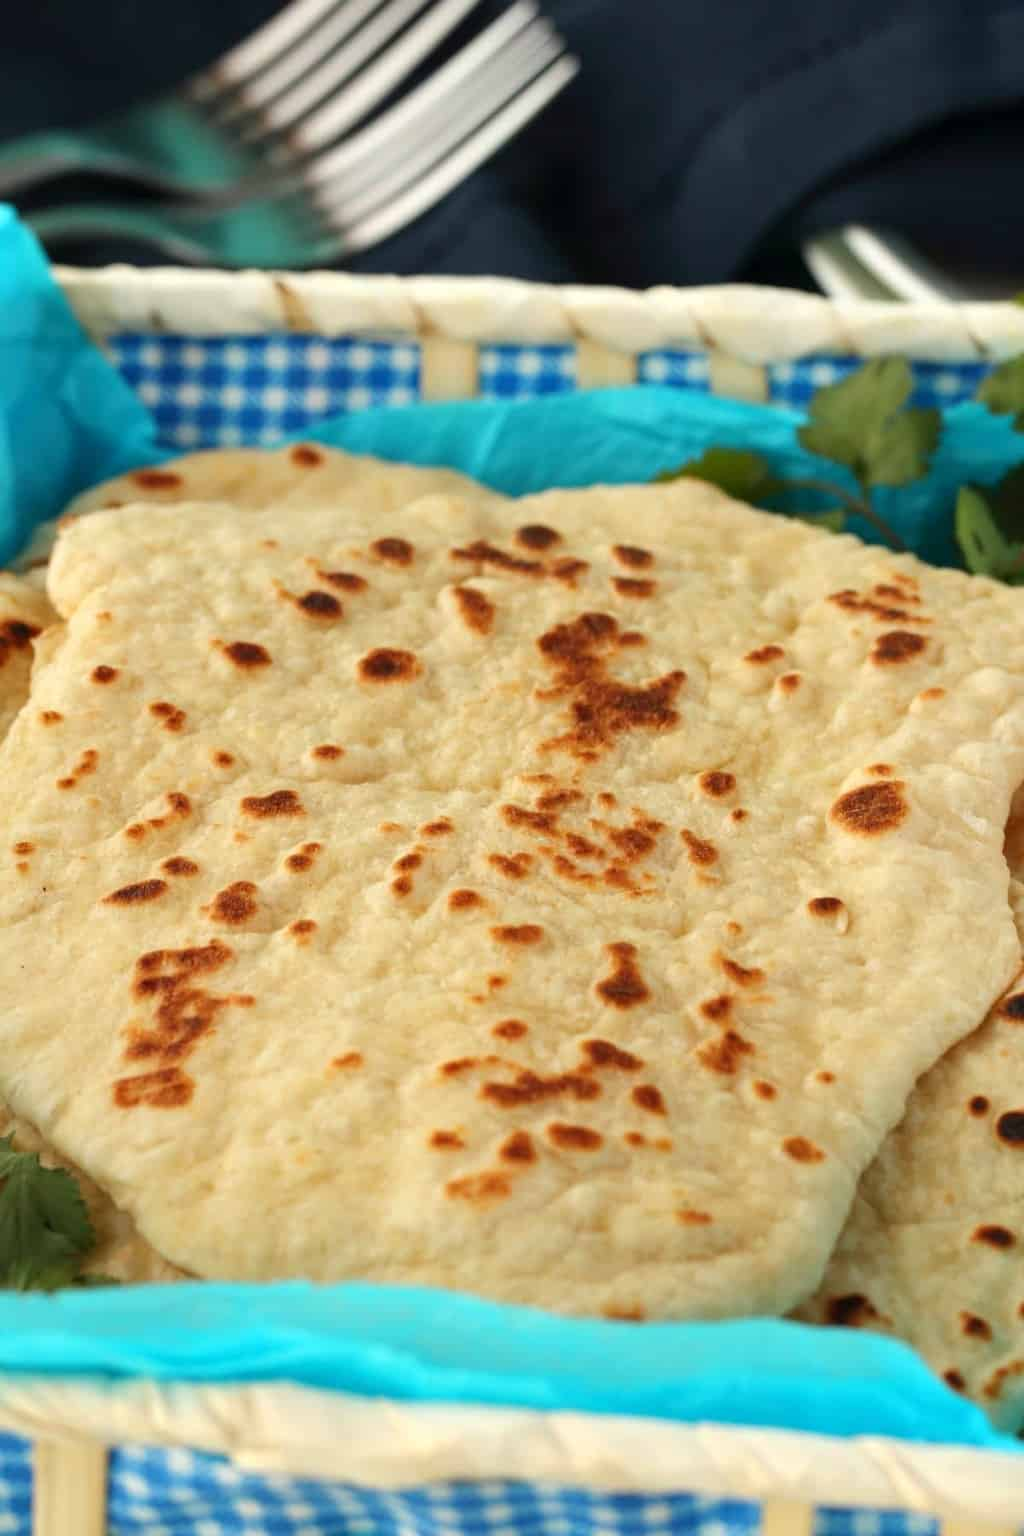 Vegan Naan in a basket lined with blue paper.